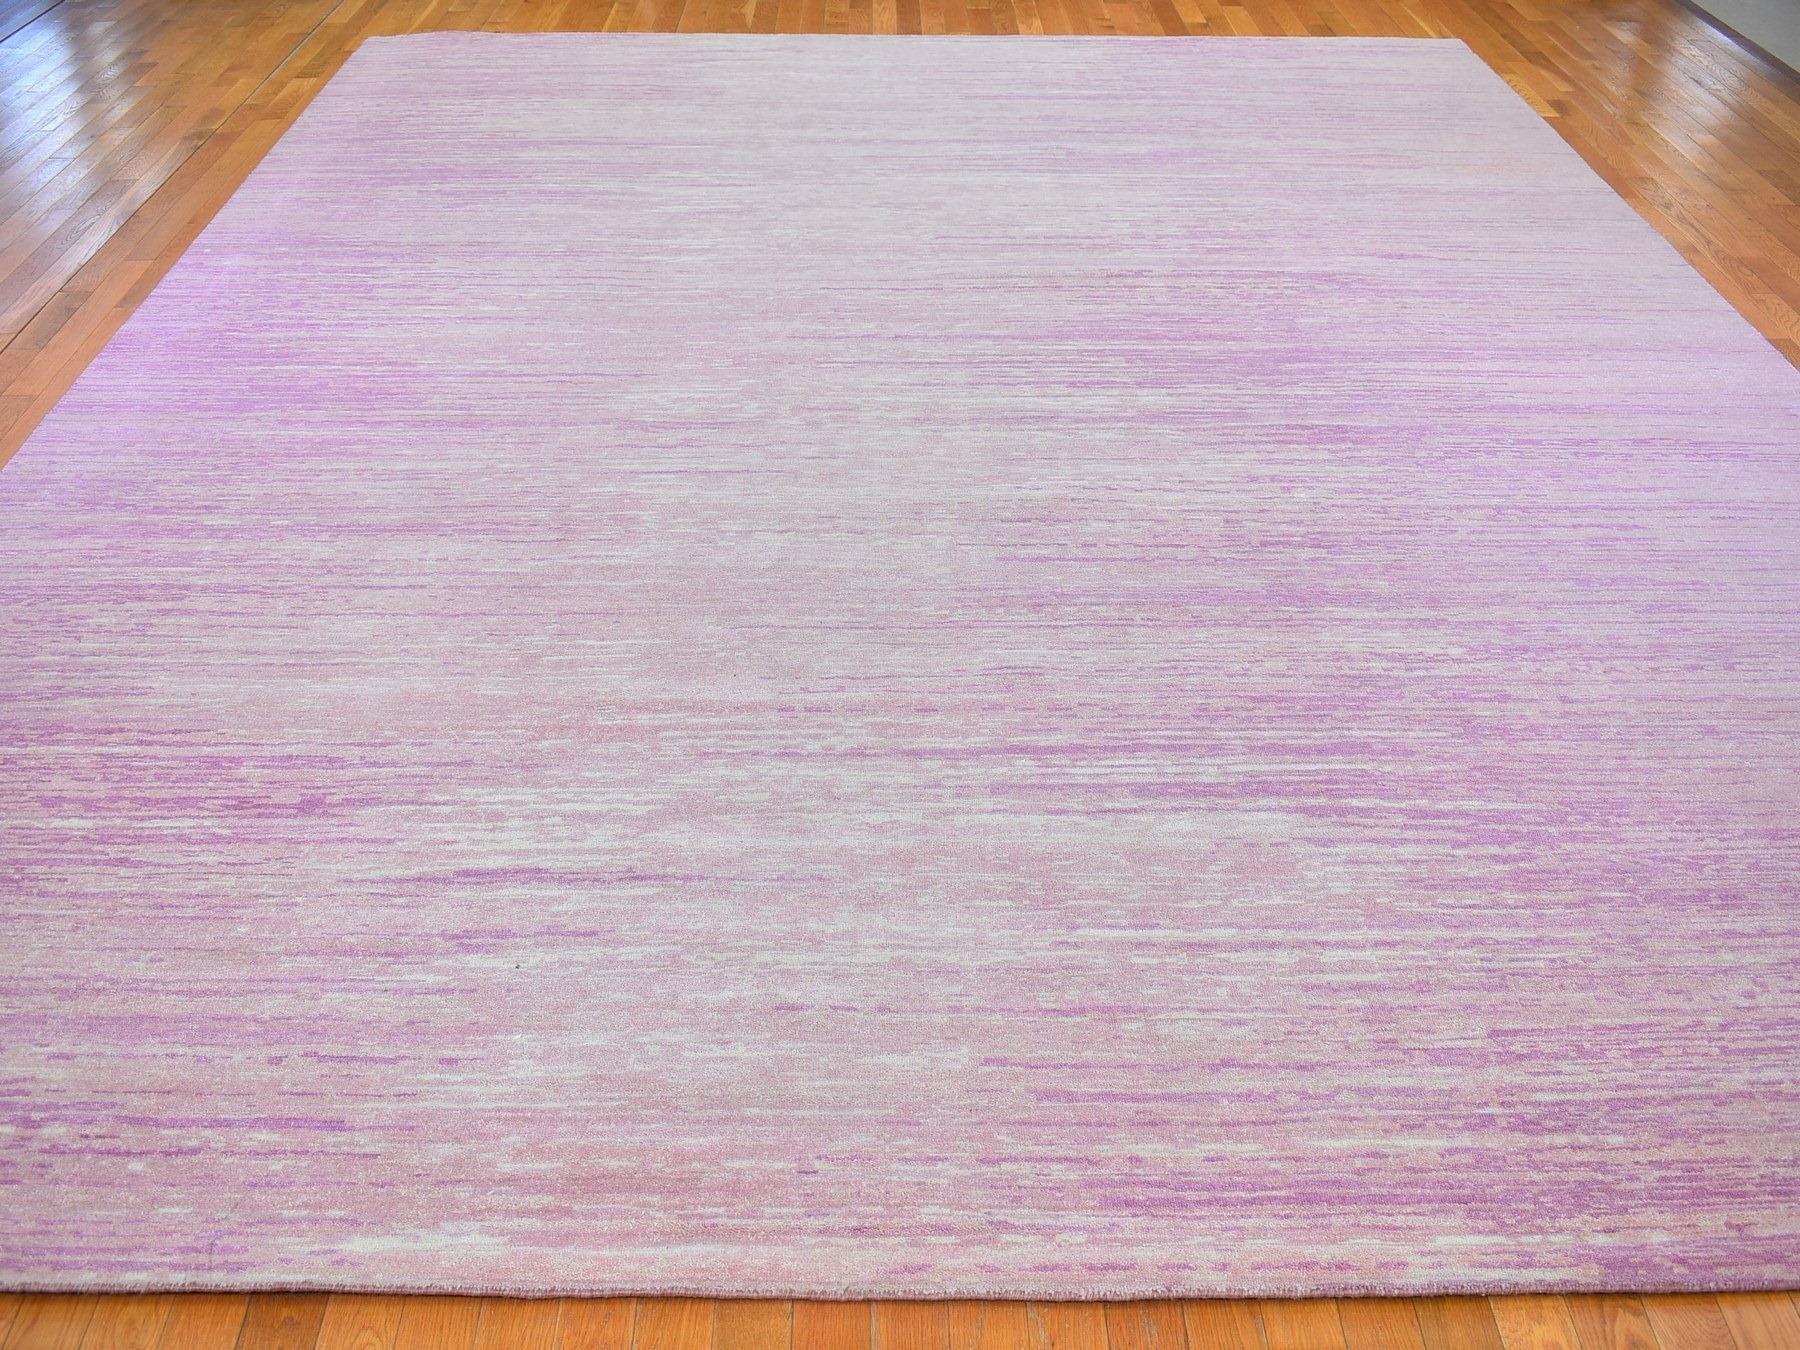 Modern & Contemporary Rugs LUV598194